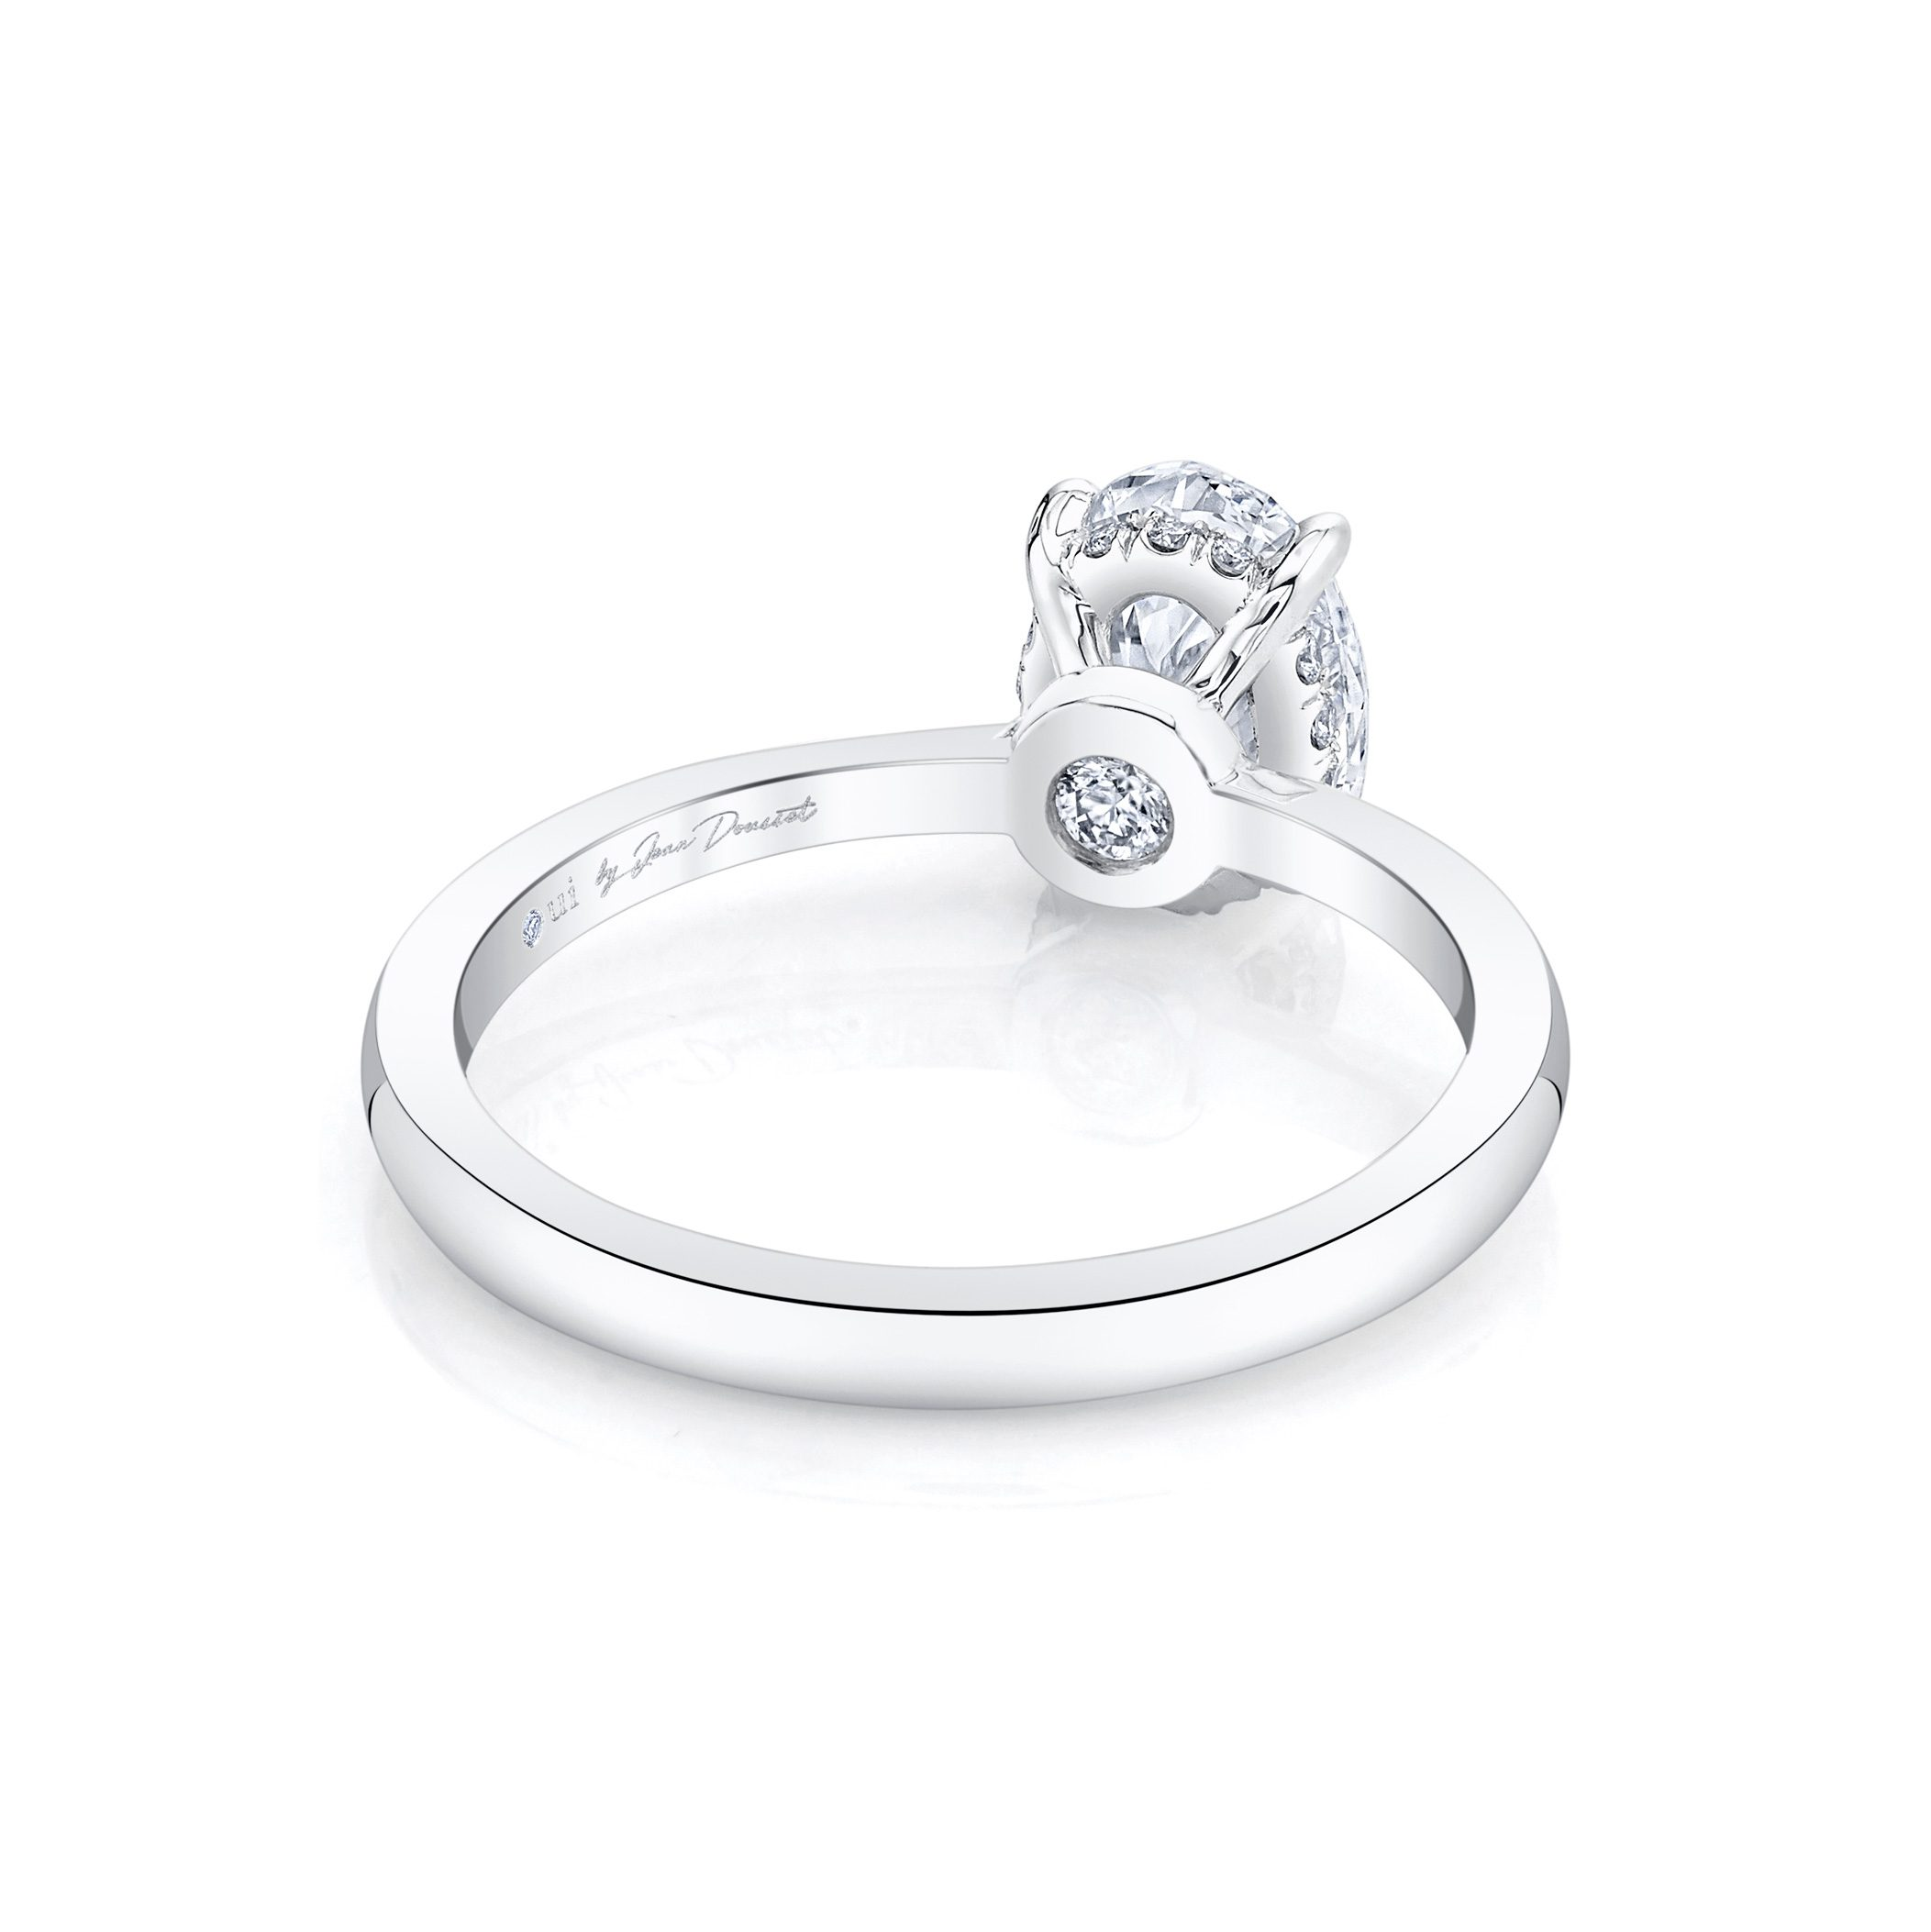 Colette Oval Solitaire Engagement Ring with a sold band in Platinum Back Shot by Oui by Jean Dousset